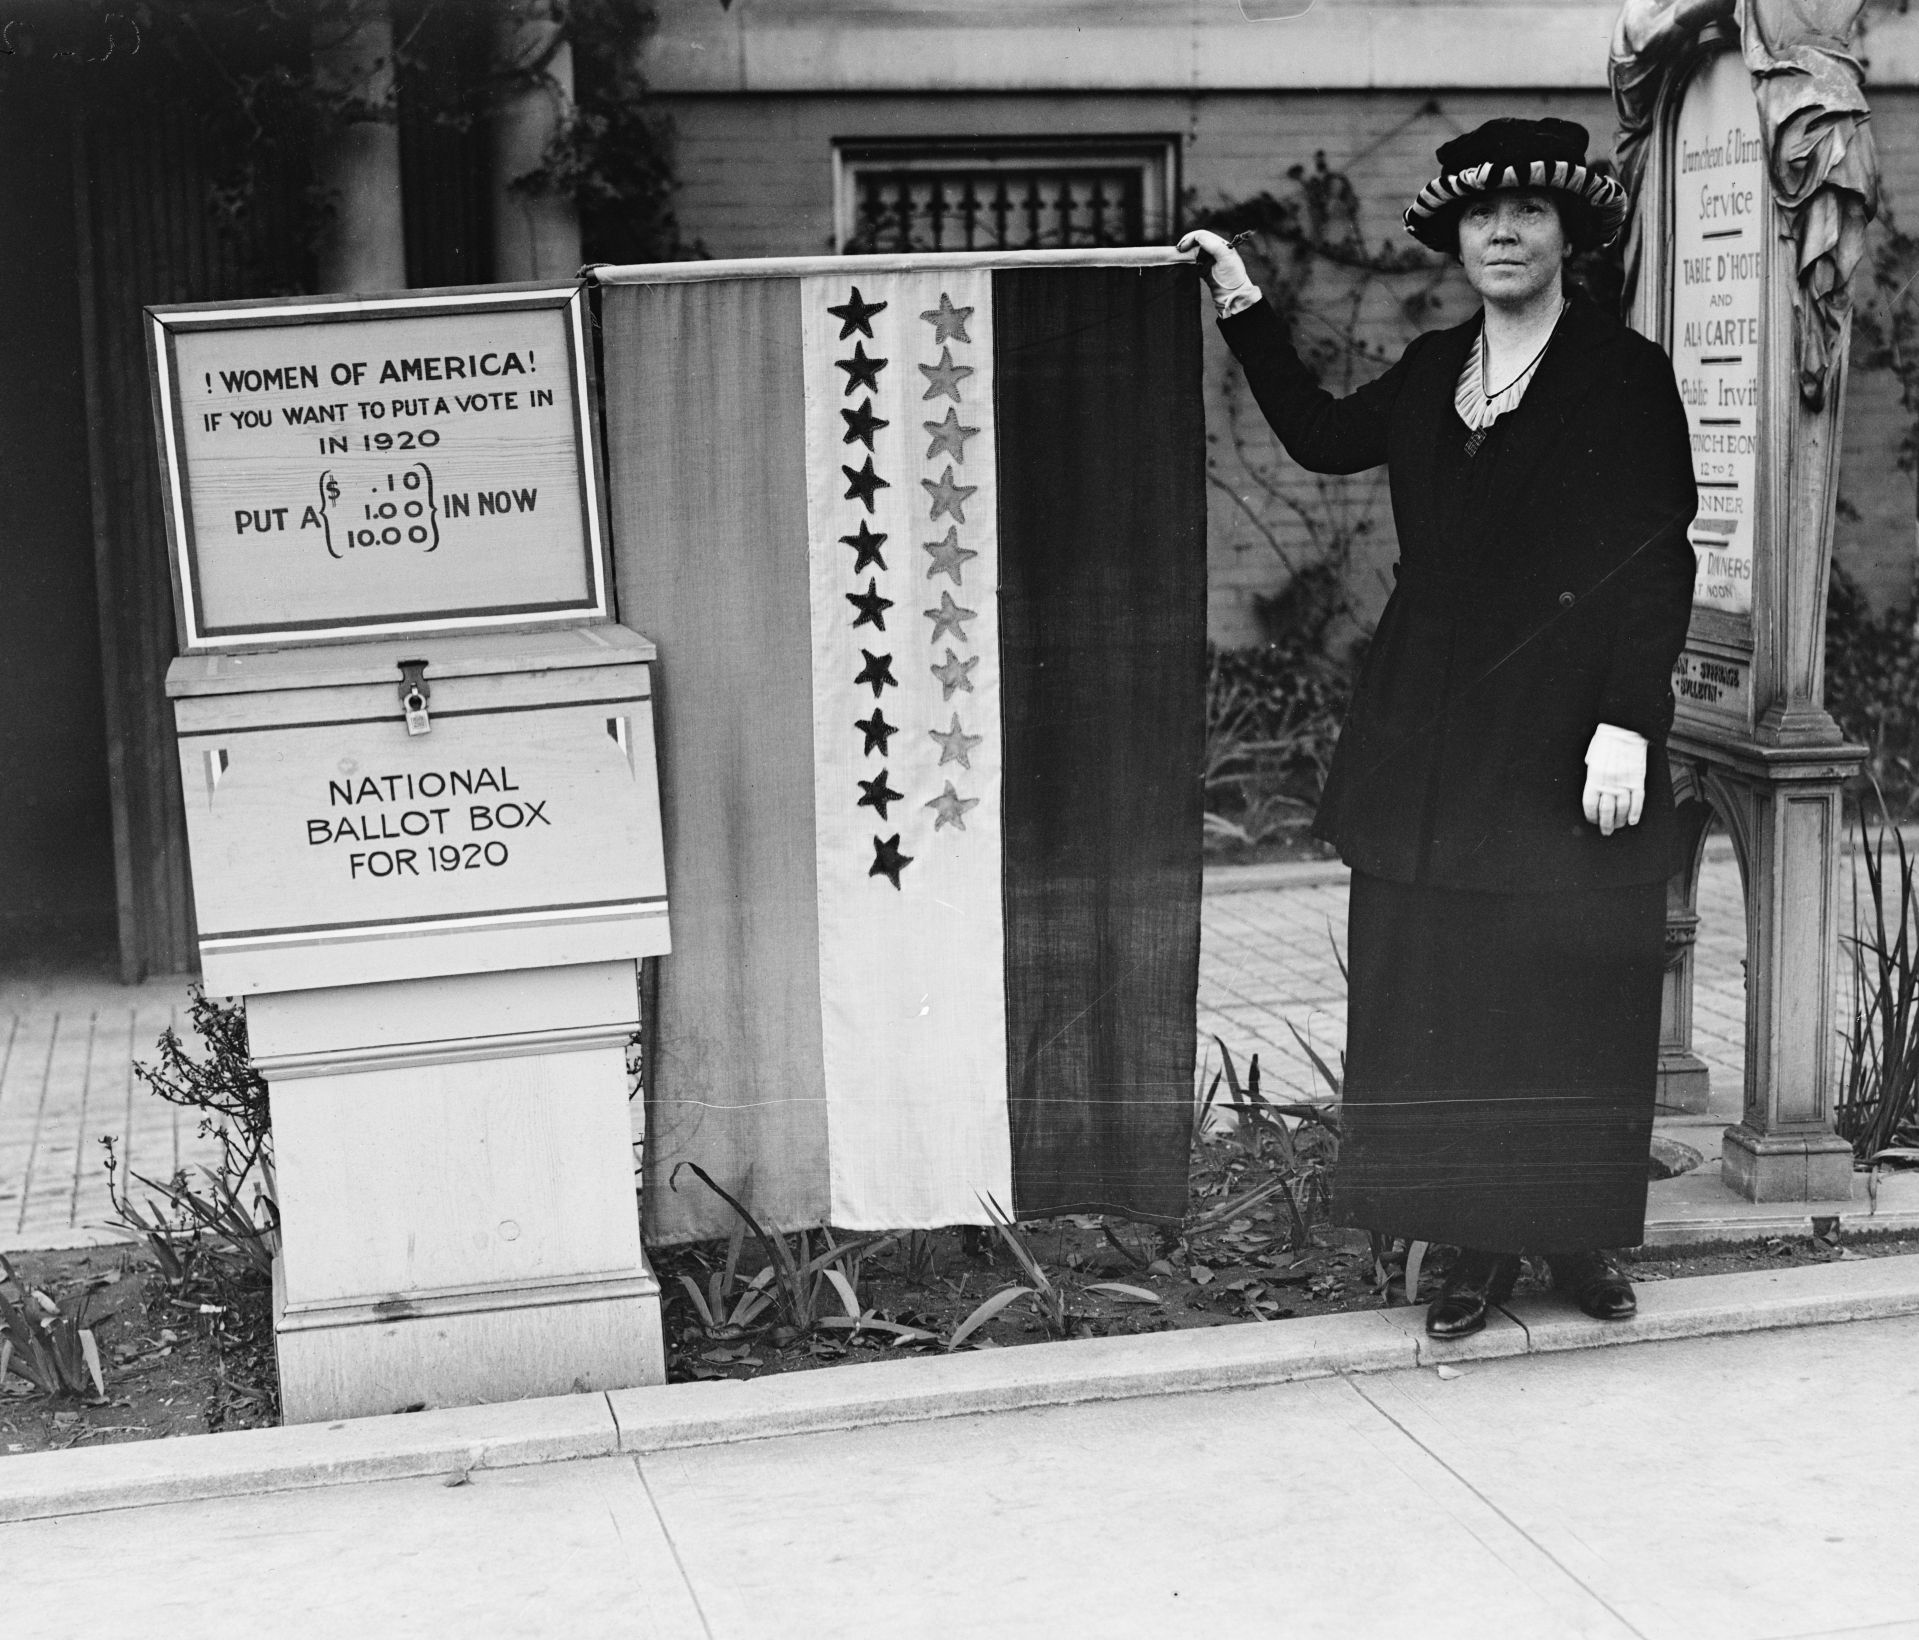 HEC/29600/29676a.tif  Women of America! If you want to put a vote in in 1920 put a (.10, 1.00, 10.00) in now. National Ballot Box for 1920  Harris & Ewing, photographer. Women of America! If you want to put a vote in input a .10, 1.00, 10.00 in now. National Ballot Box for. United States United States, 1920. Photograph. https://www.loc.gov/item/2016884625/.